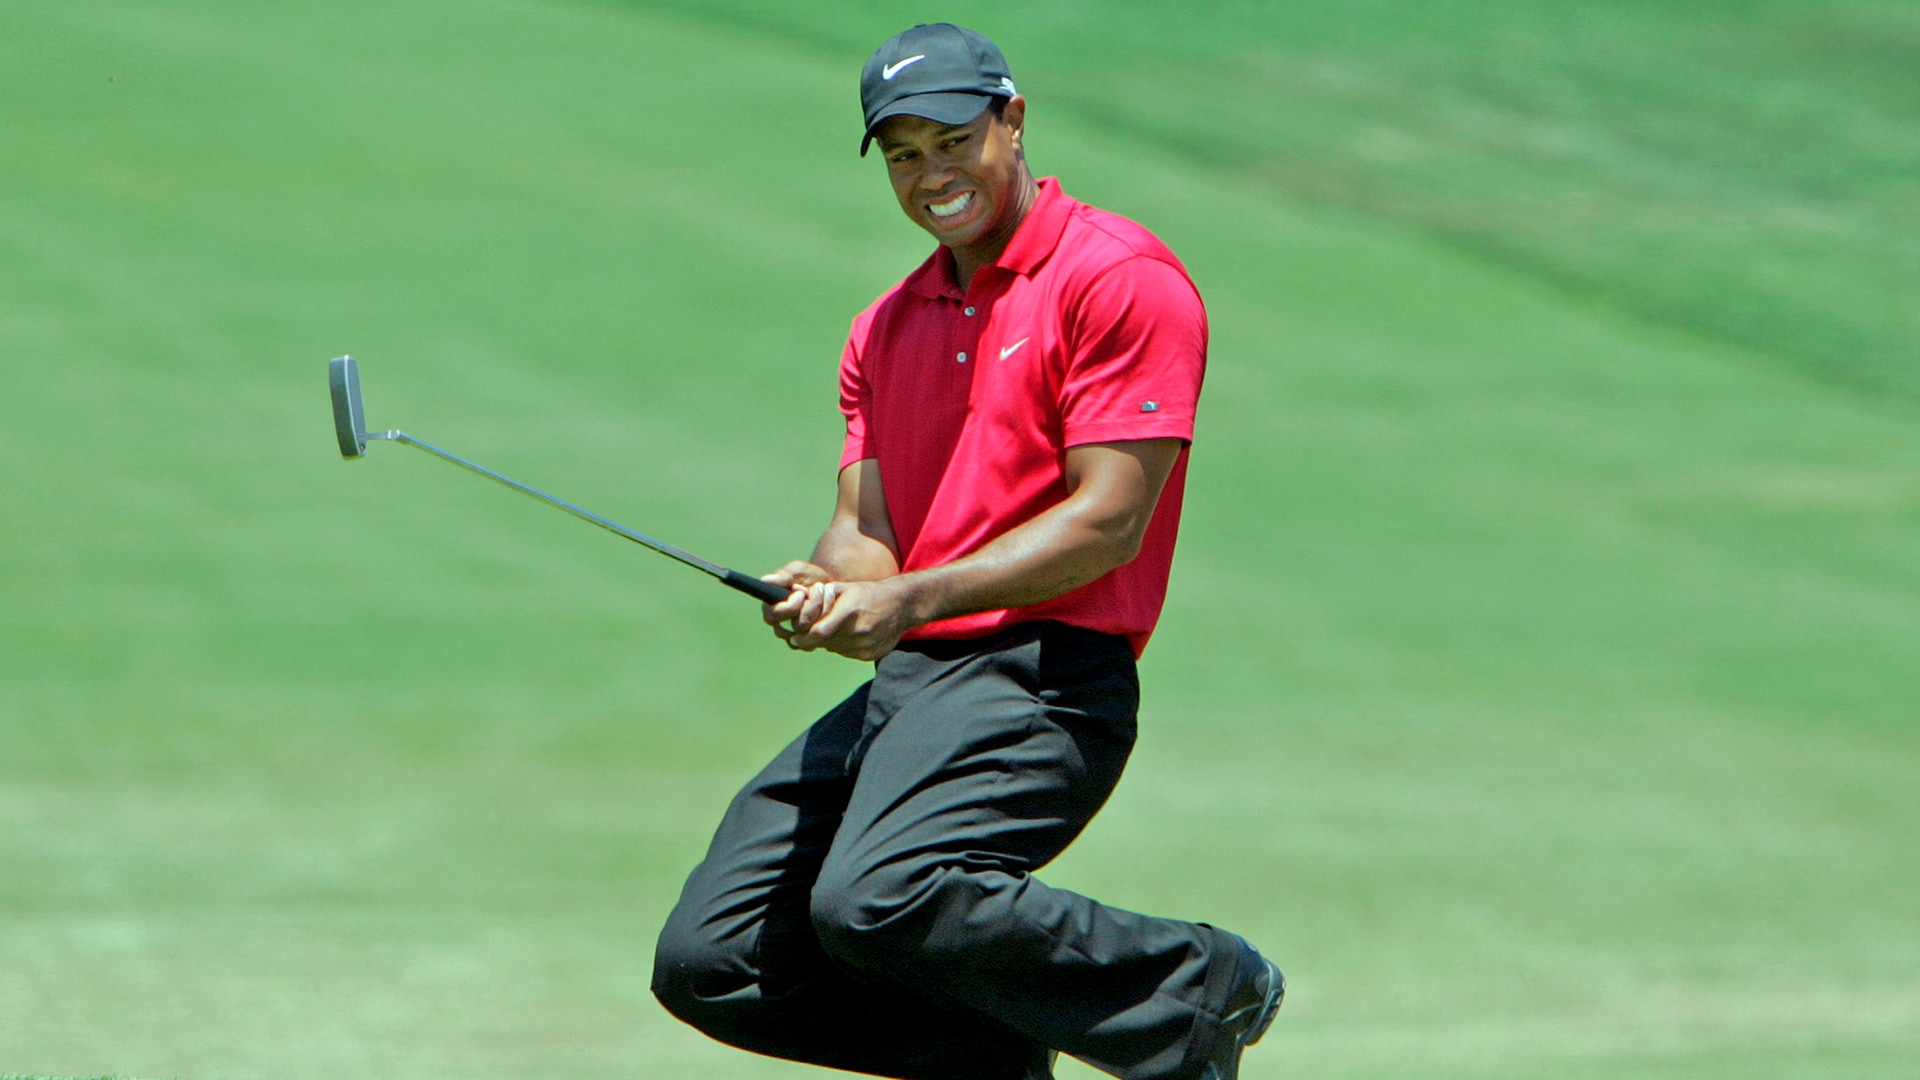 Tiger Woods Says This Exercise Early In His Career Destroyed His Body Golf Channel